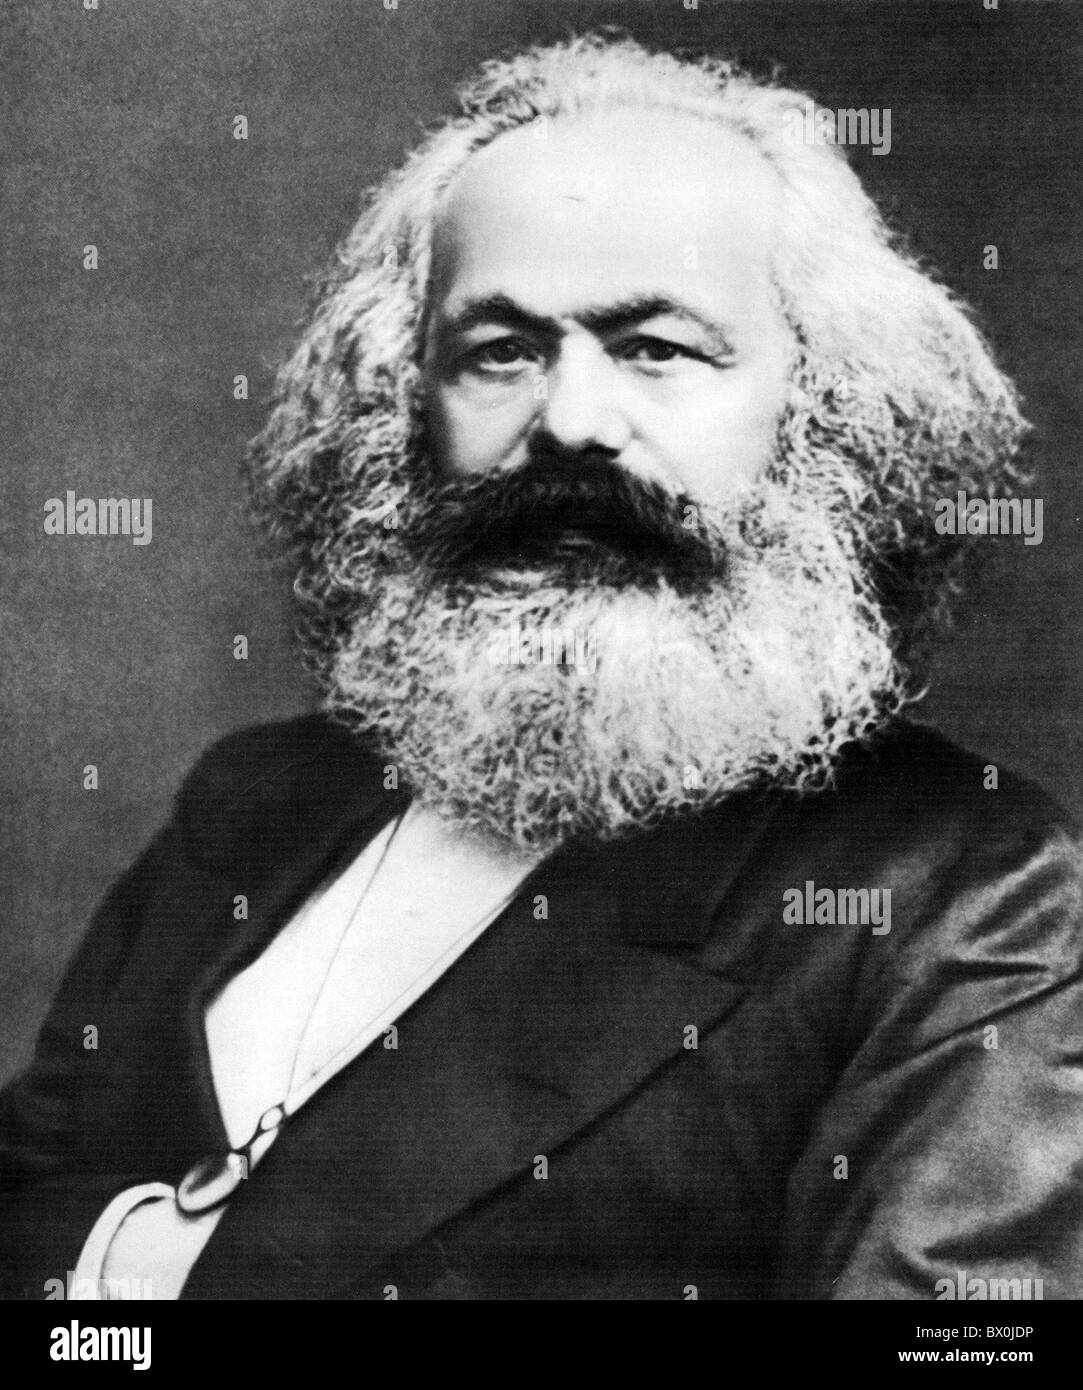 Image result for images of karl marx